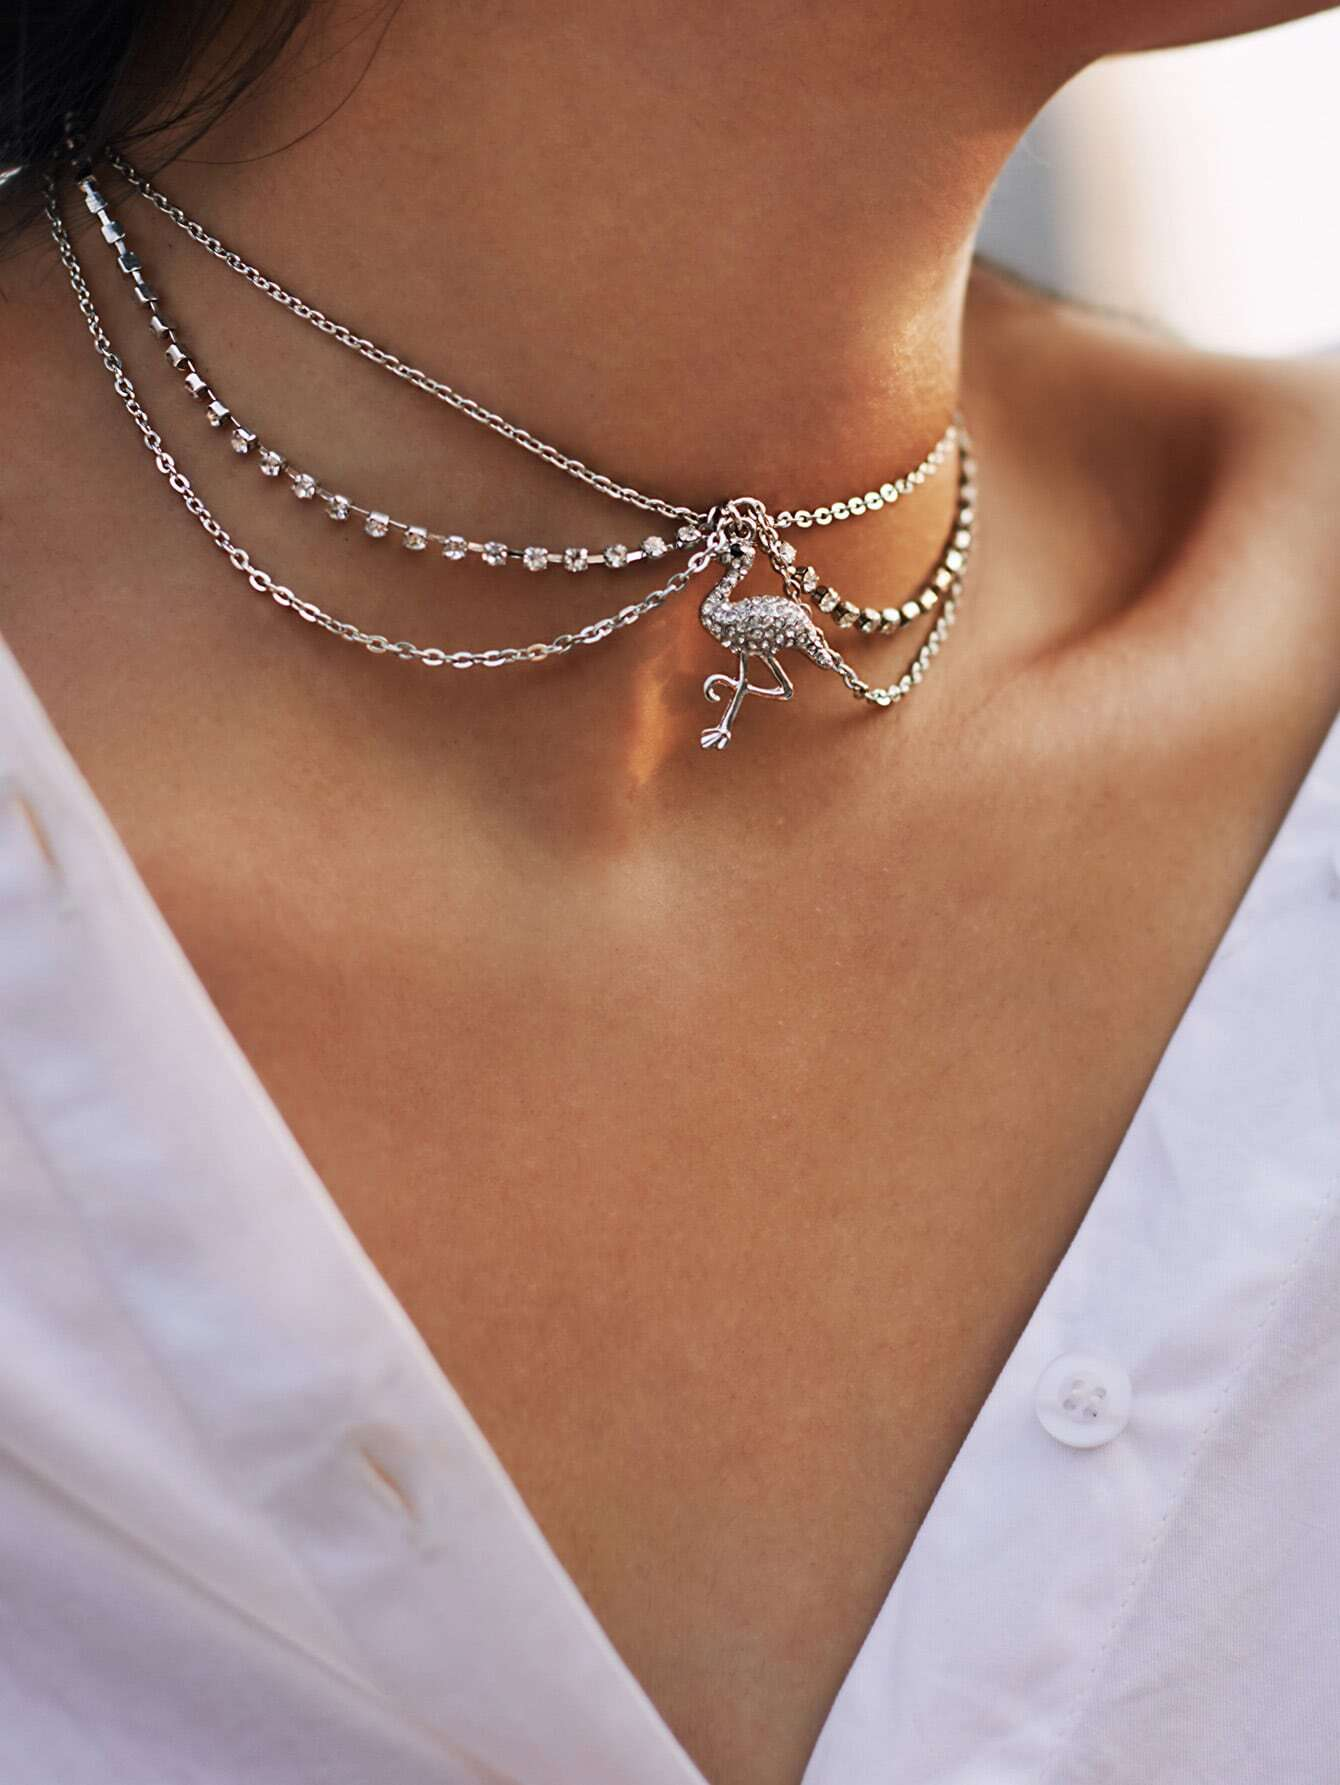 Flamingo Pendant Layered Chain Necklace cross pendant layered chain necklace